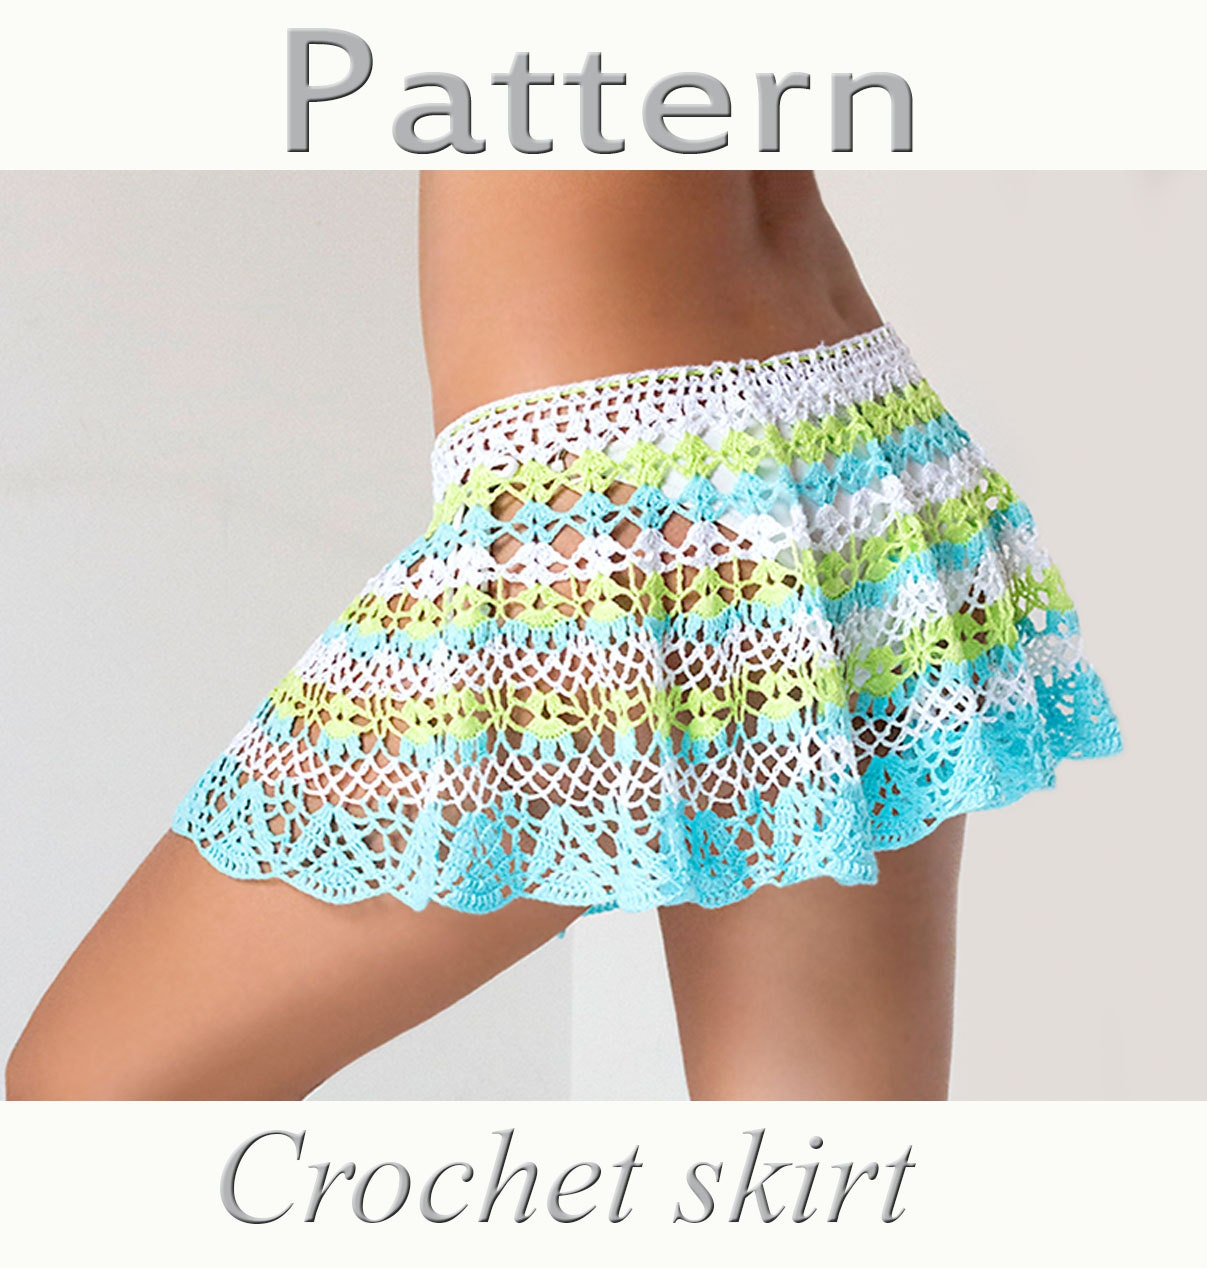 Crochet beach skirt pattern pdf crochet cover up from katrinshine crochet beach skirt pattern pdf crochet cover up bankloansurffo Gallery